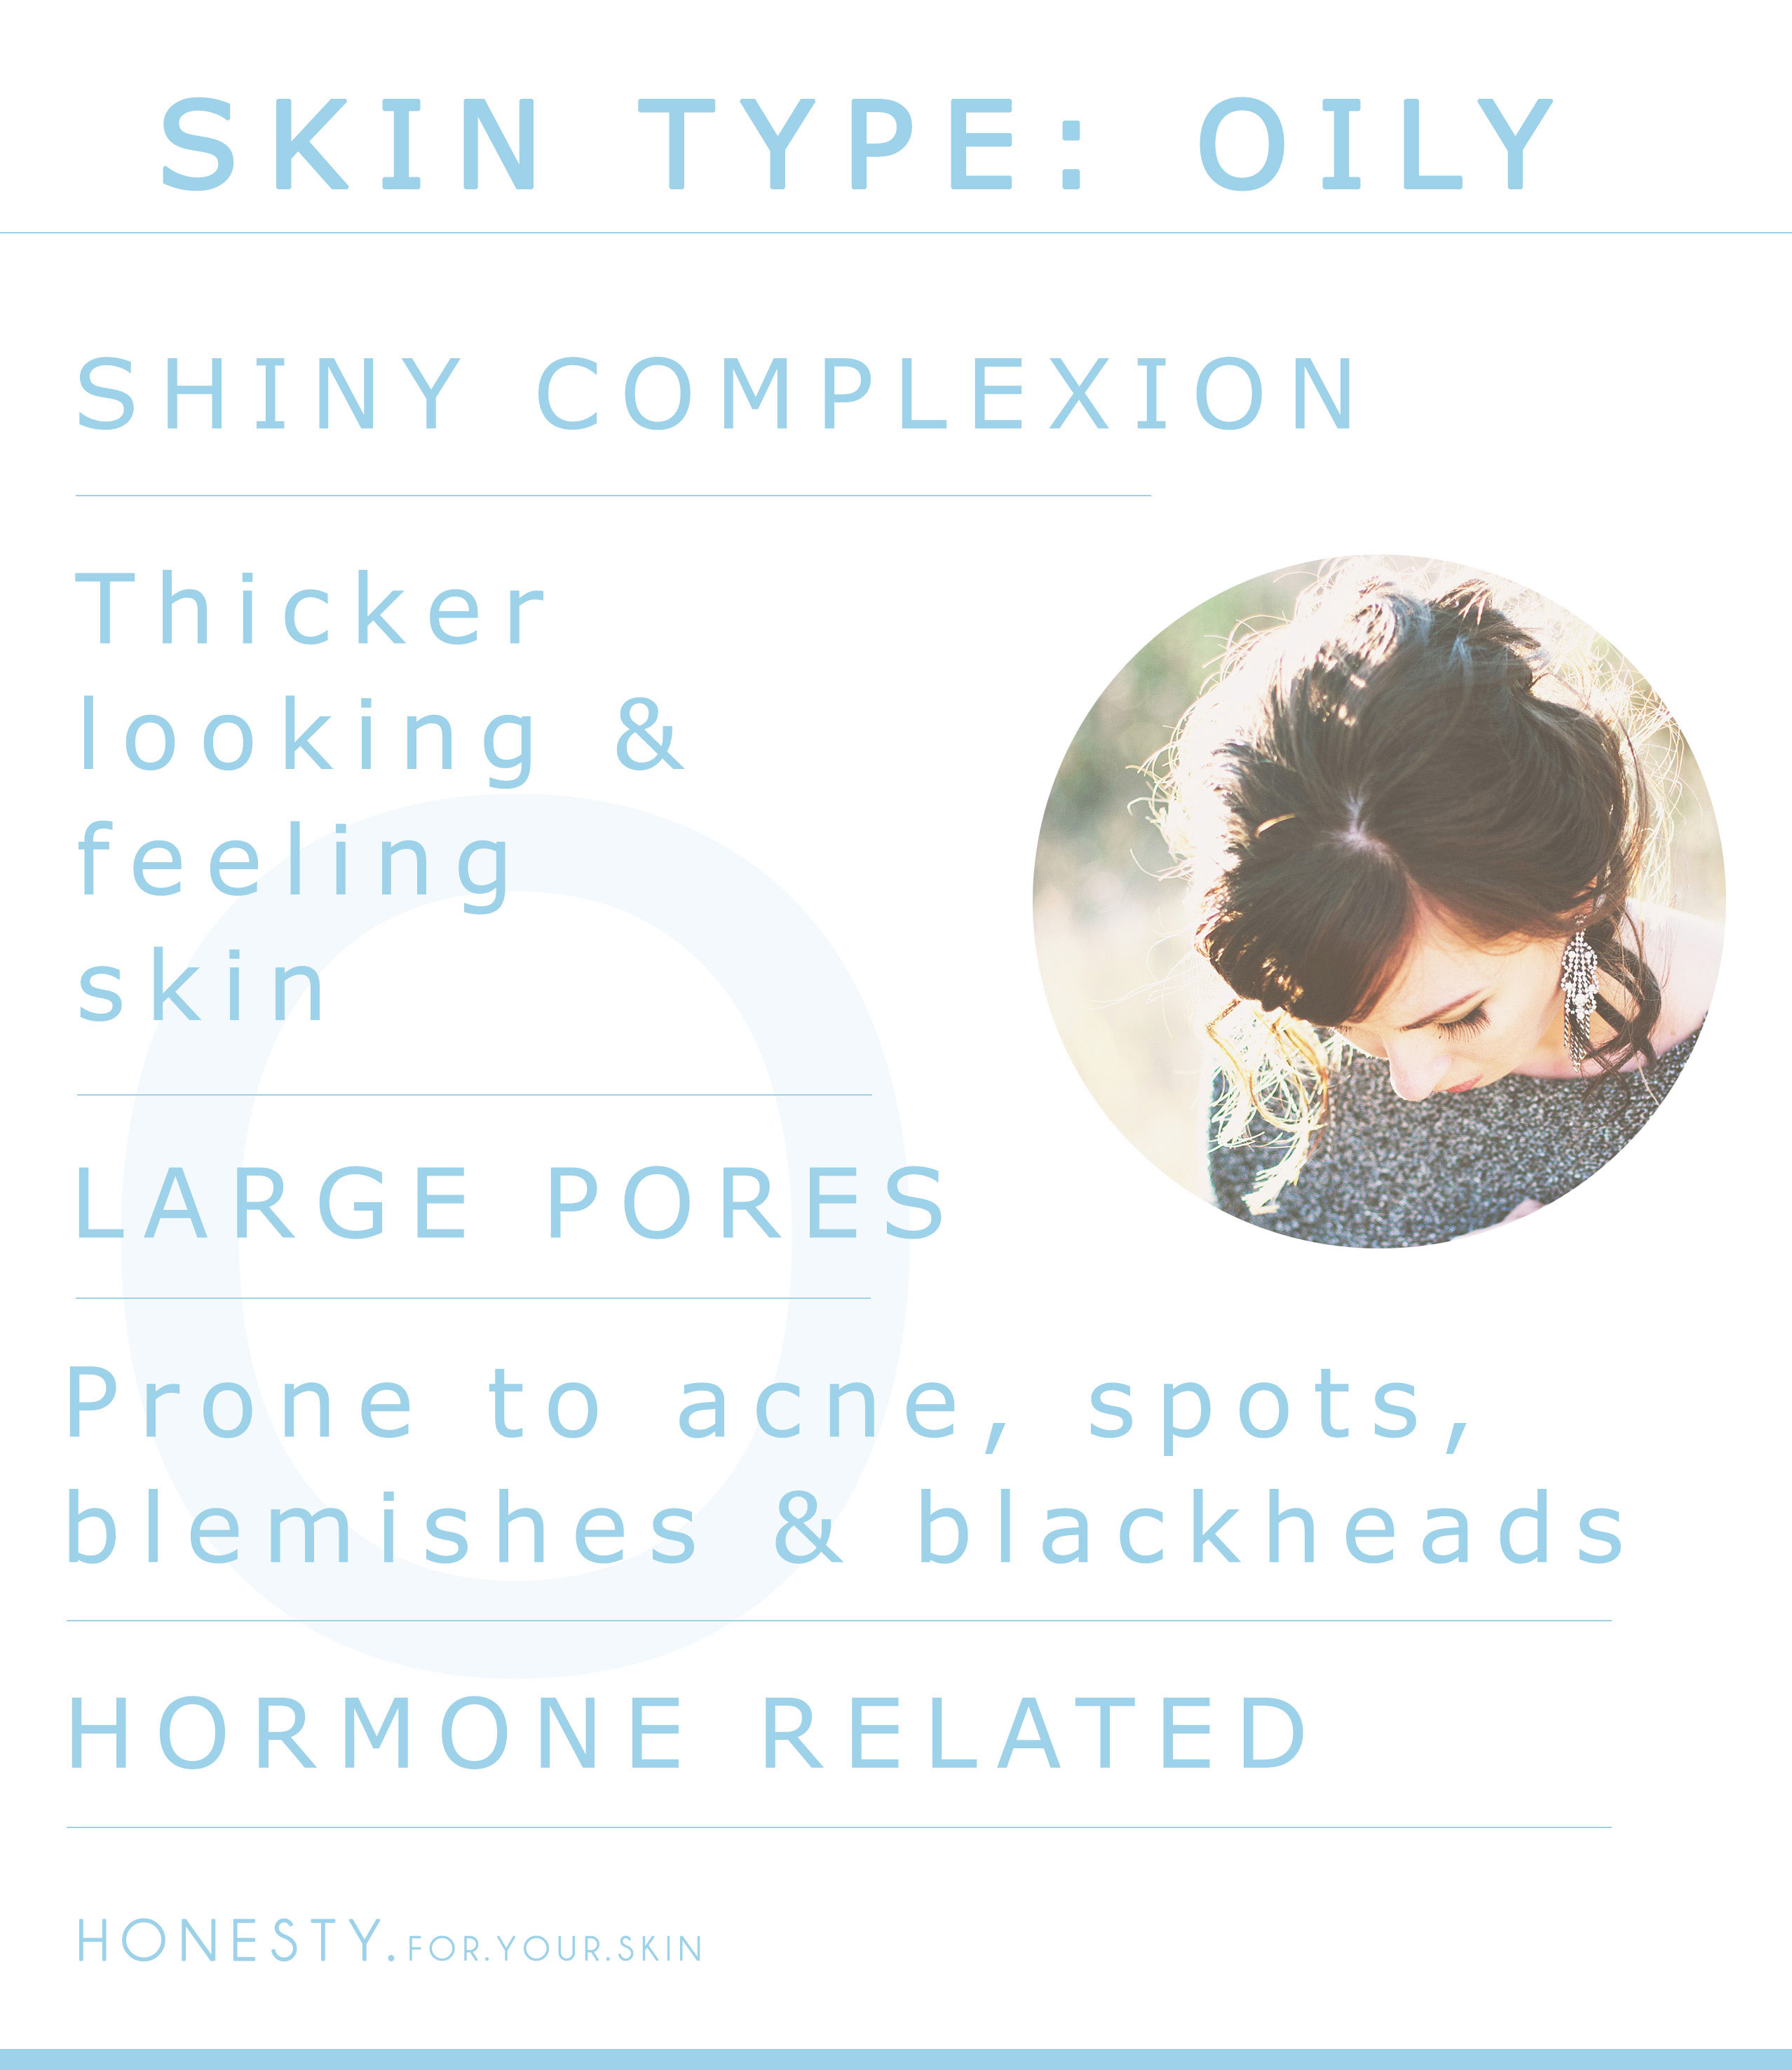 What is your SKIN TYPE? Is it OILY? Check out this menu to diagnose. PLUS here are the KEY thing your need to know to take AWESOME care of oily skin.